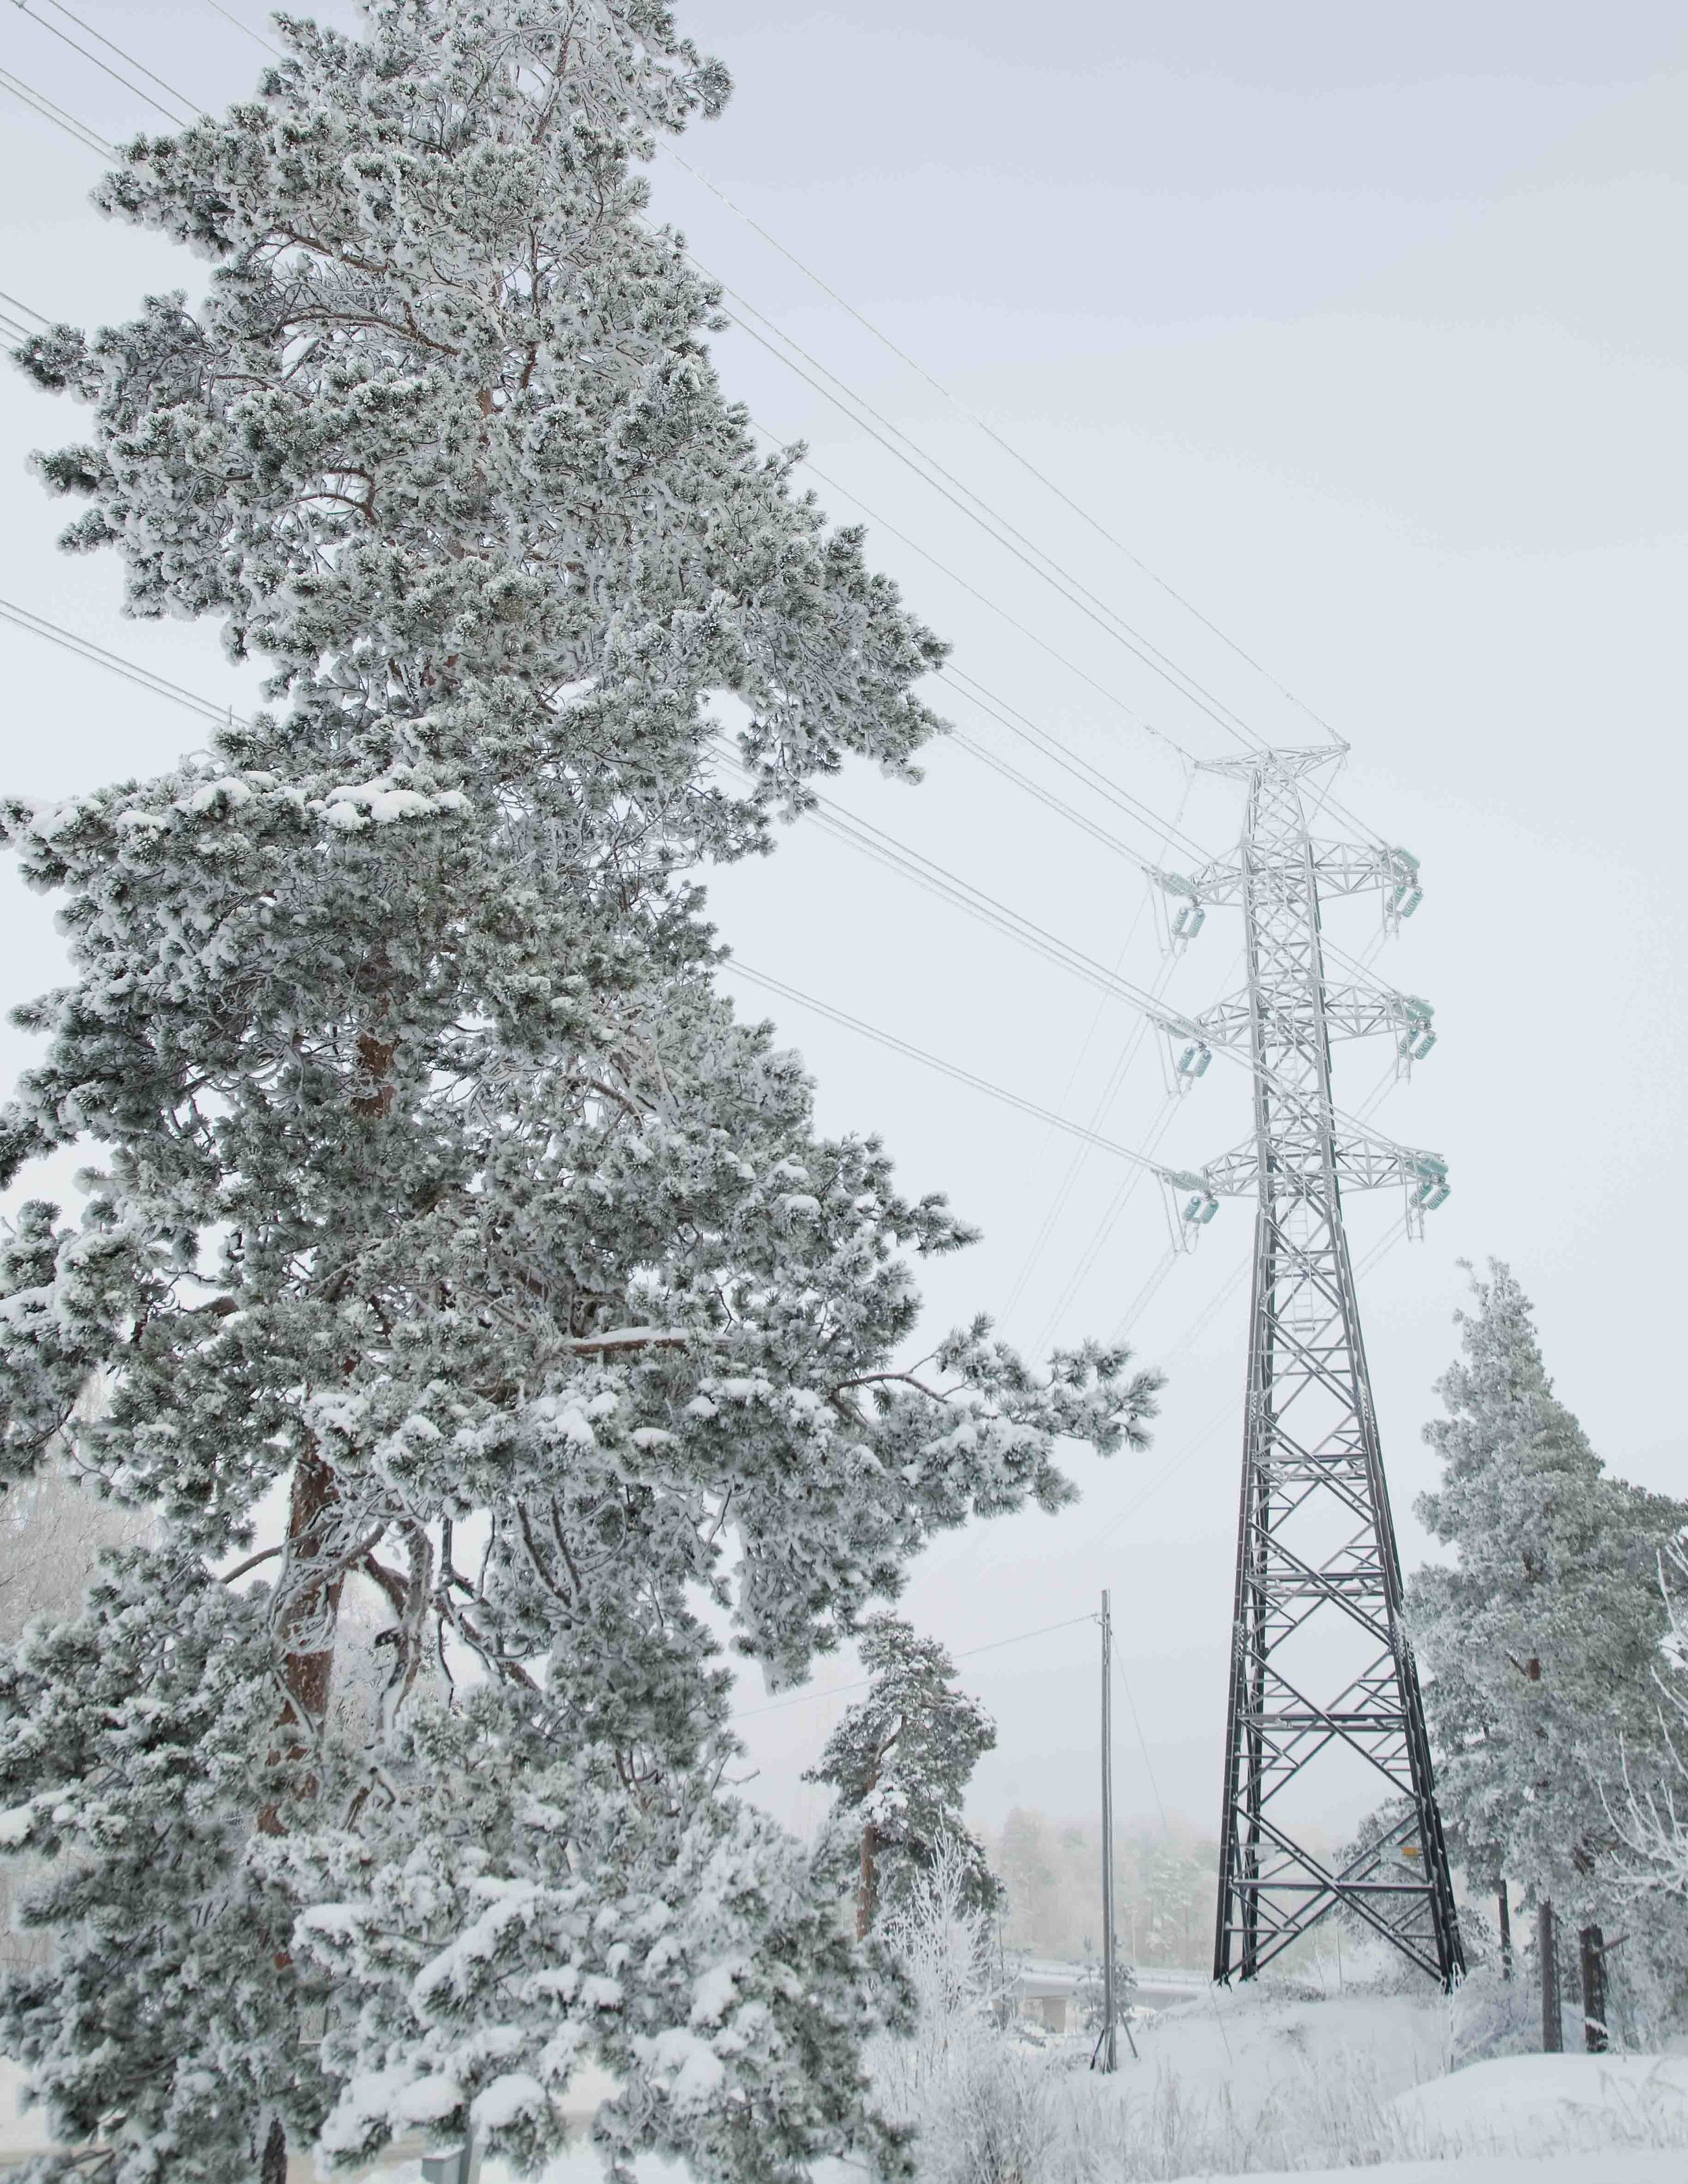 Finnish electricity network & distribution company